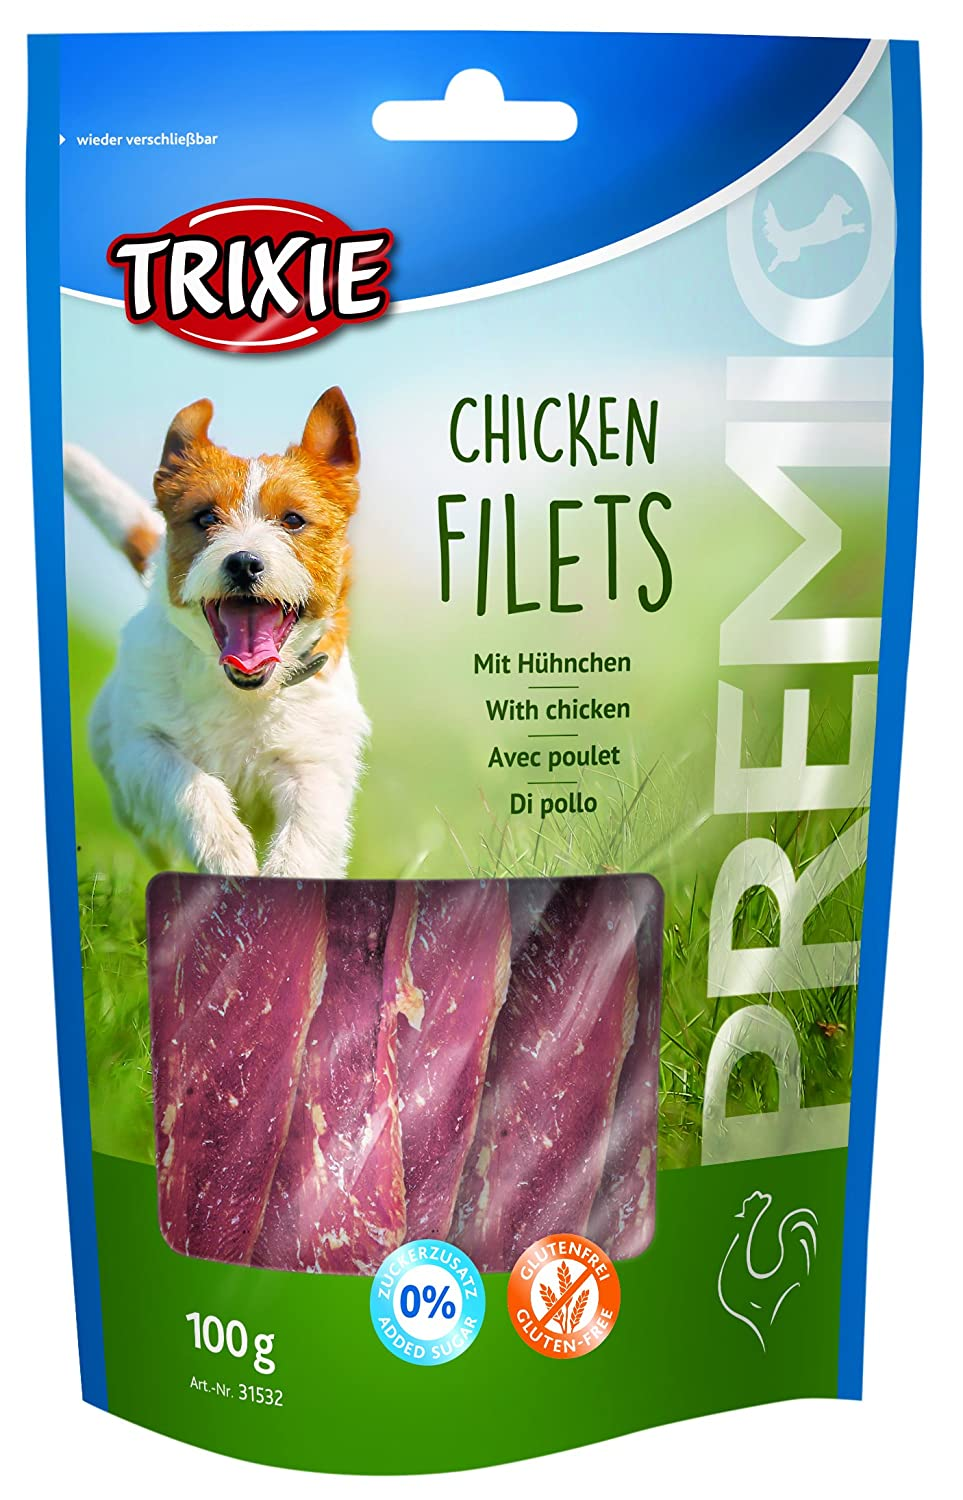 Trixie Premio Chicken Filets Friandise pour Chien 100 g TX-31532